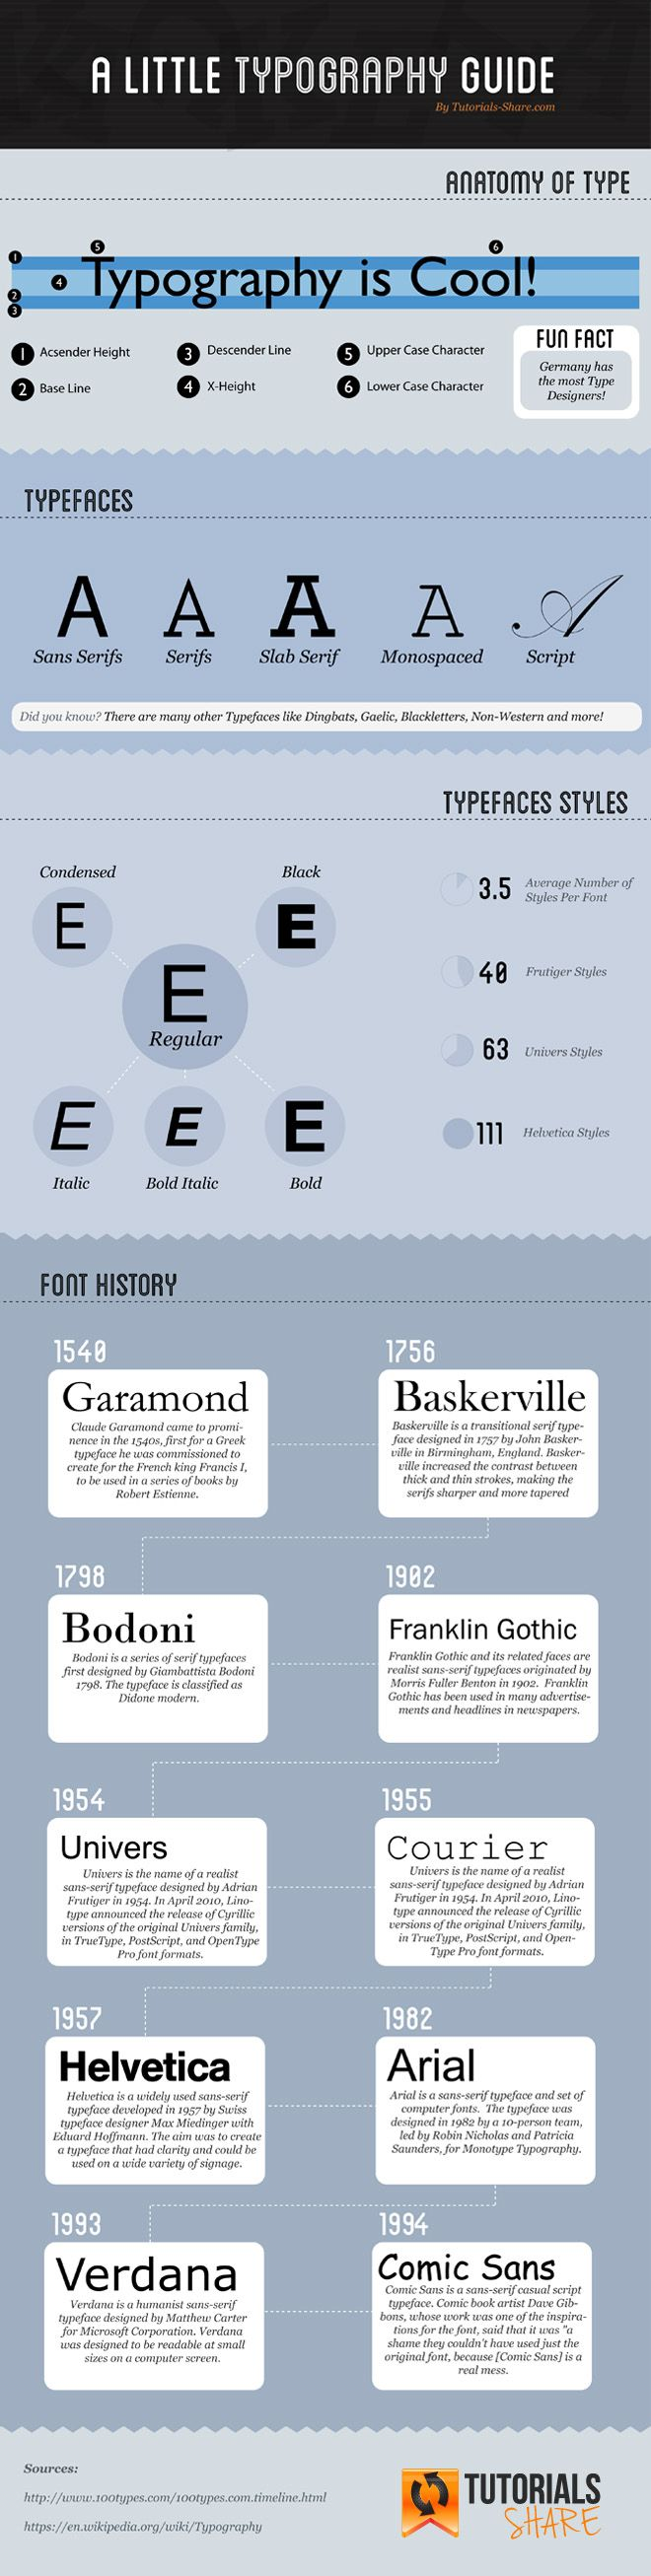 A Little Typography Guide, infographic design by Tutorials Share. http://tutorials-share.com/graphics/a-little-typography-guide-typography-infographic/